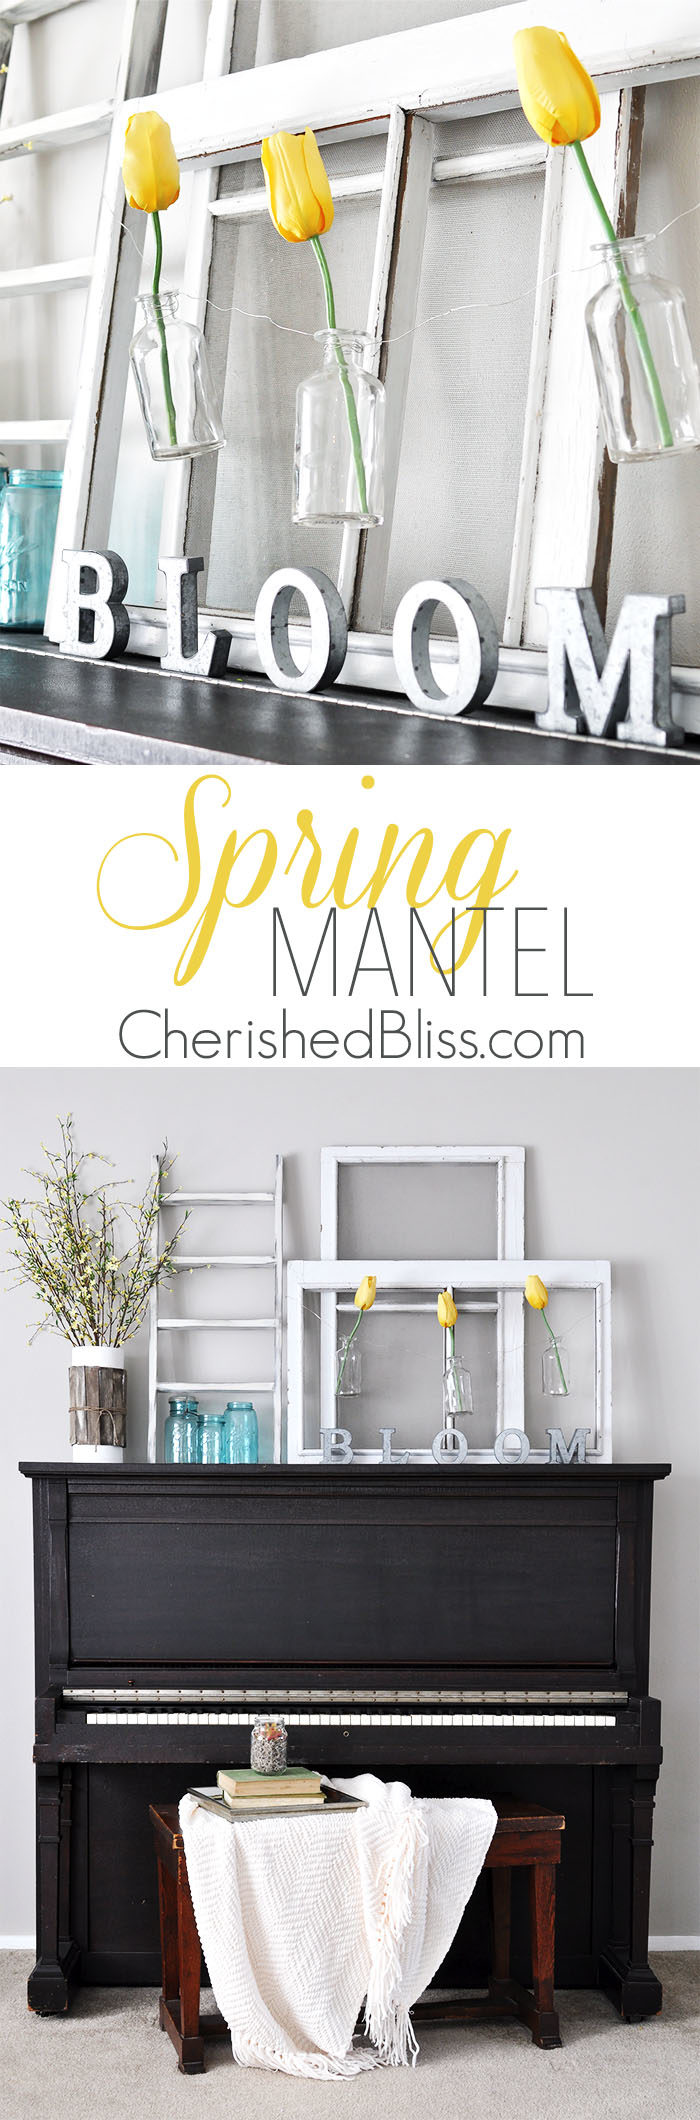 Simple Cottage Farmhouse Spring Mantel